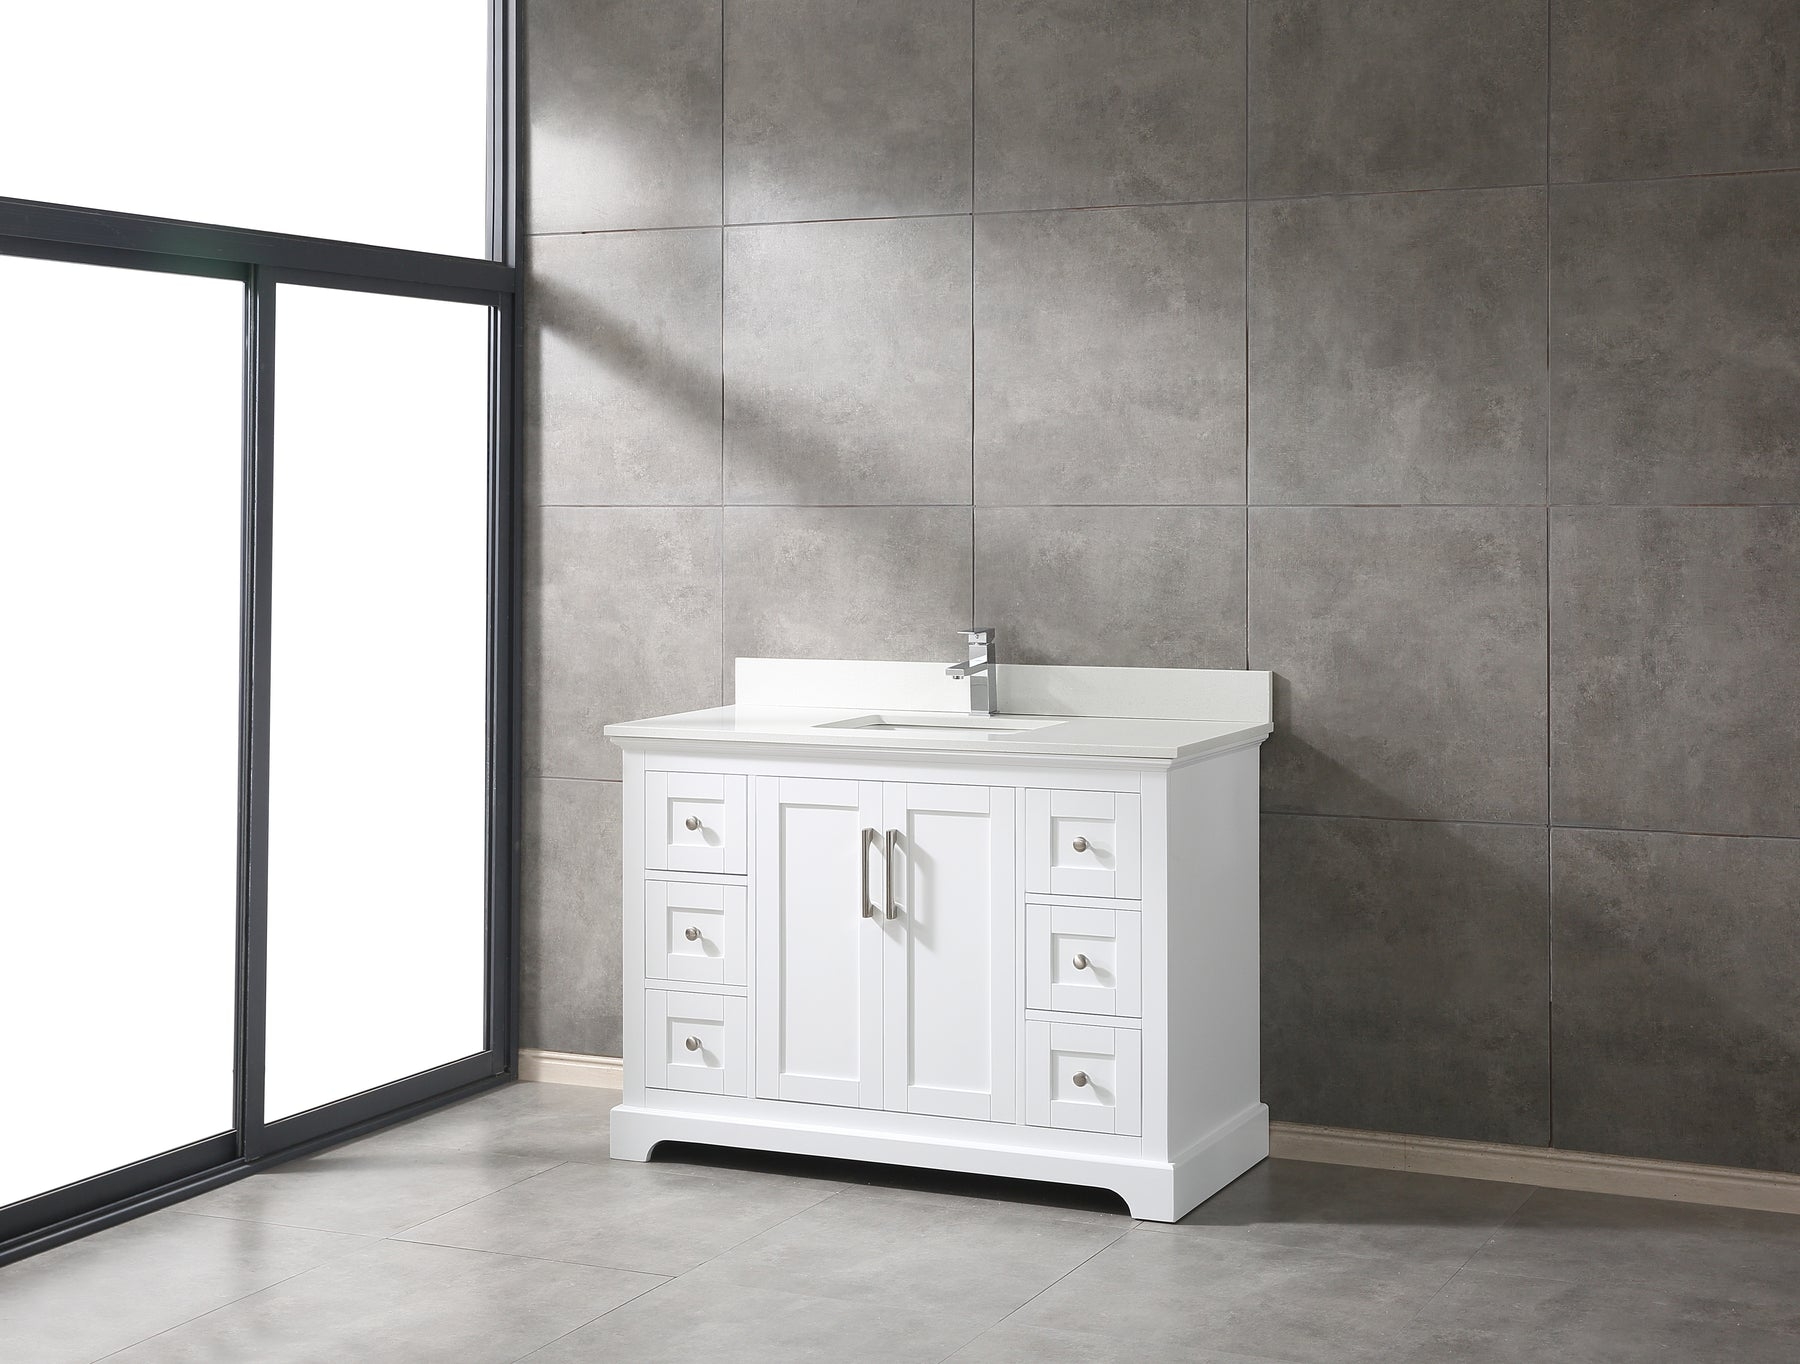 What are the standard sizes for bathroom vanity?